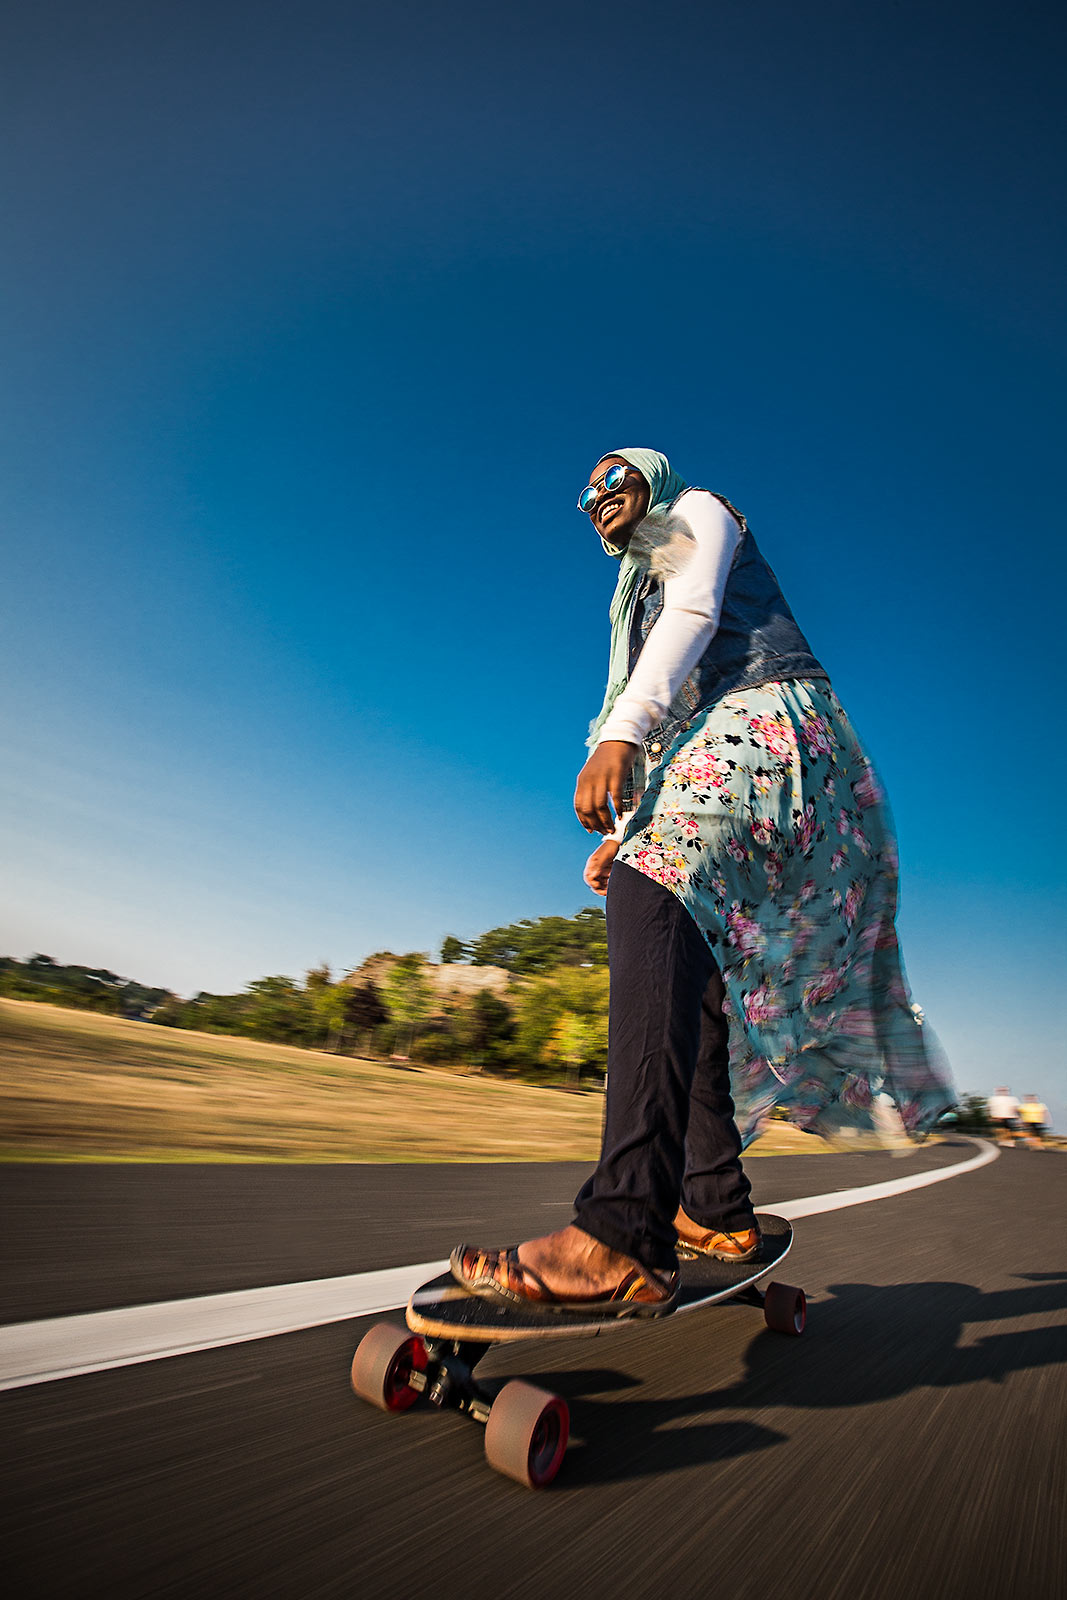 A young muslim woman wearigna headscarf riding a skatebaord at a Connecticut beach